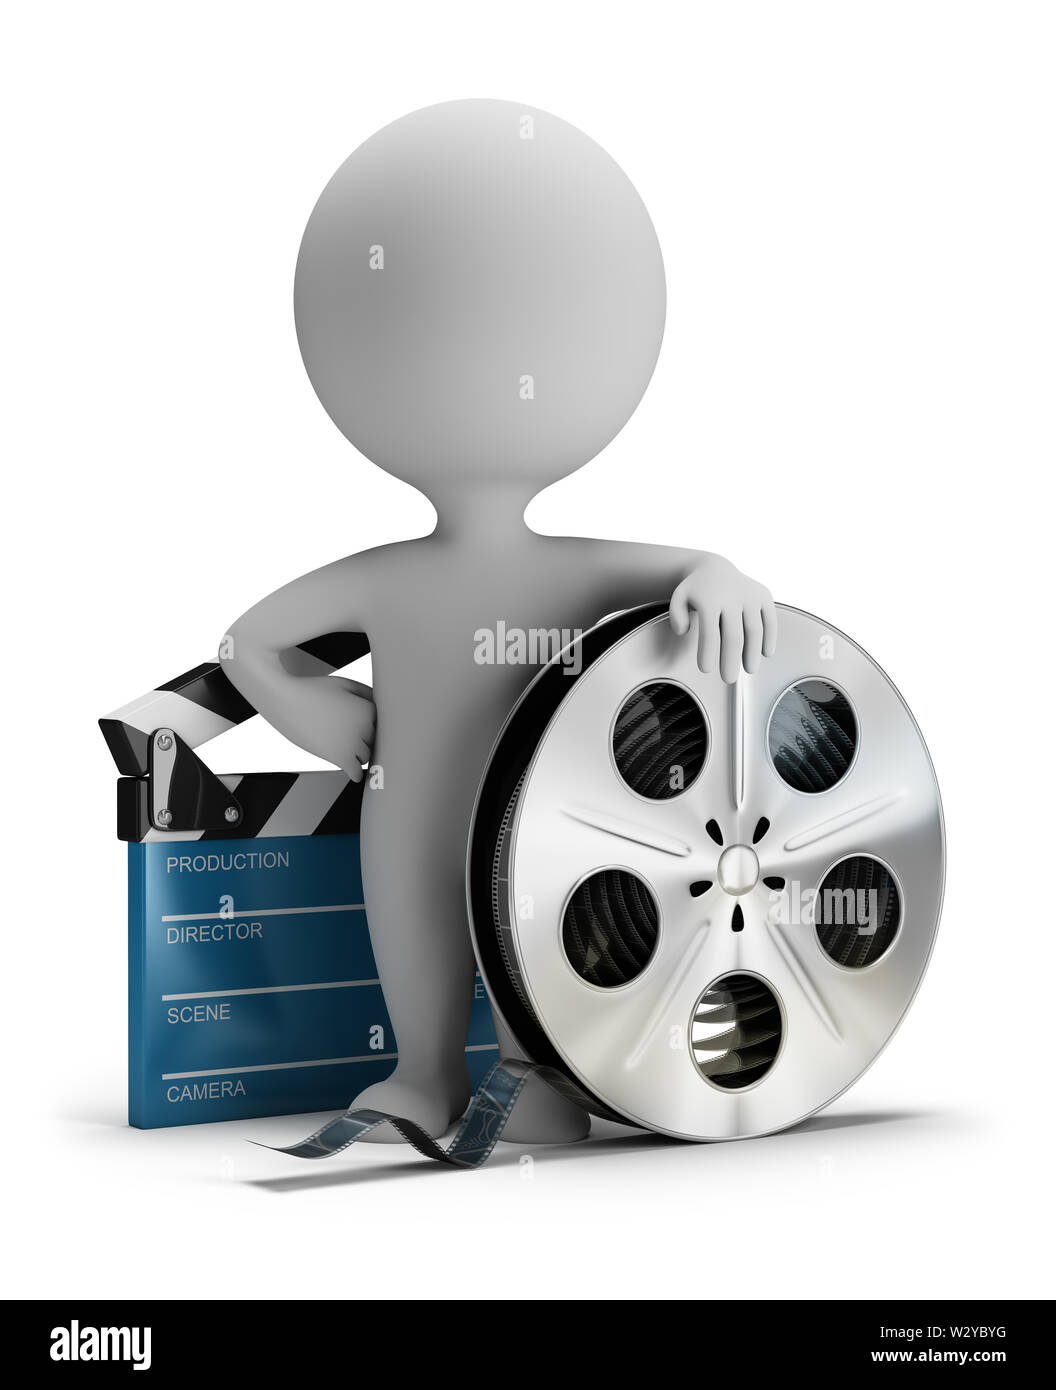 3d small person standing next to cinema clapper and film tape 3d image. White background. Stock Photo